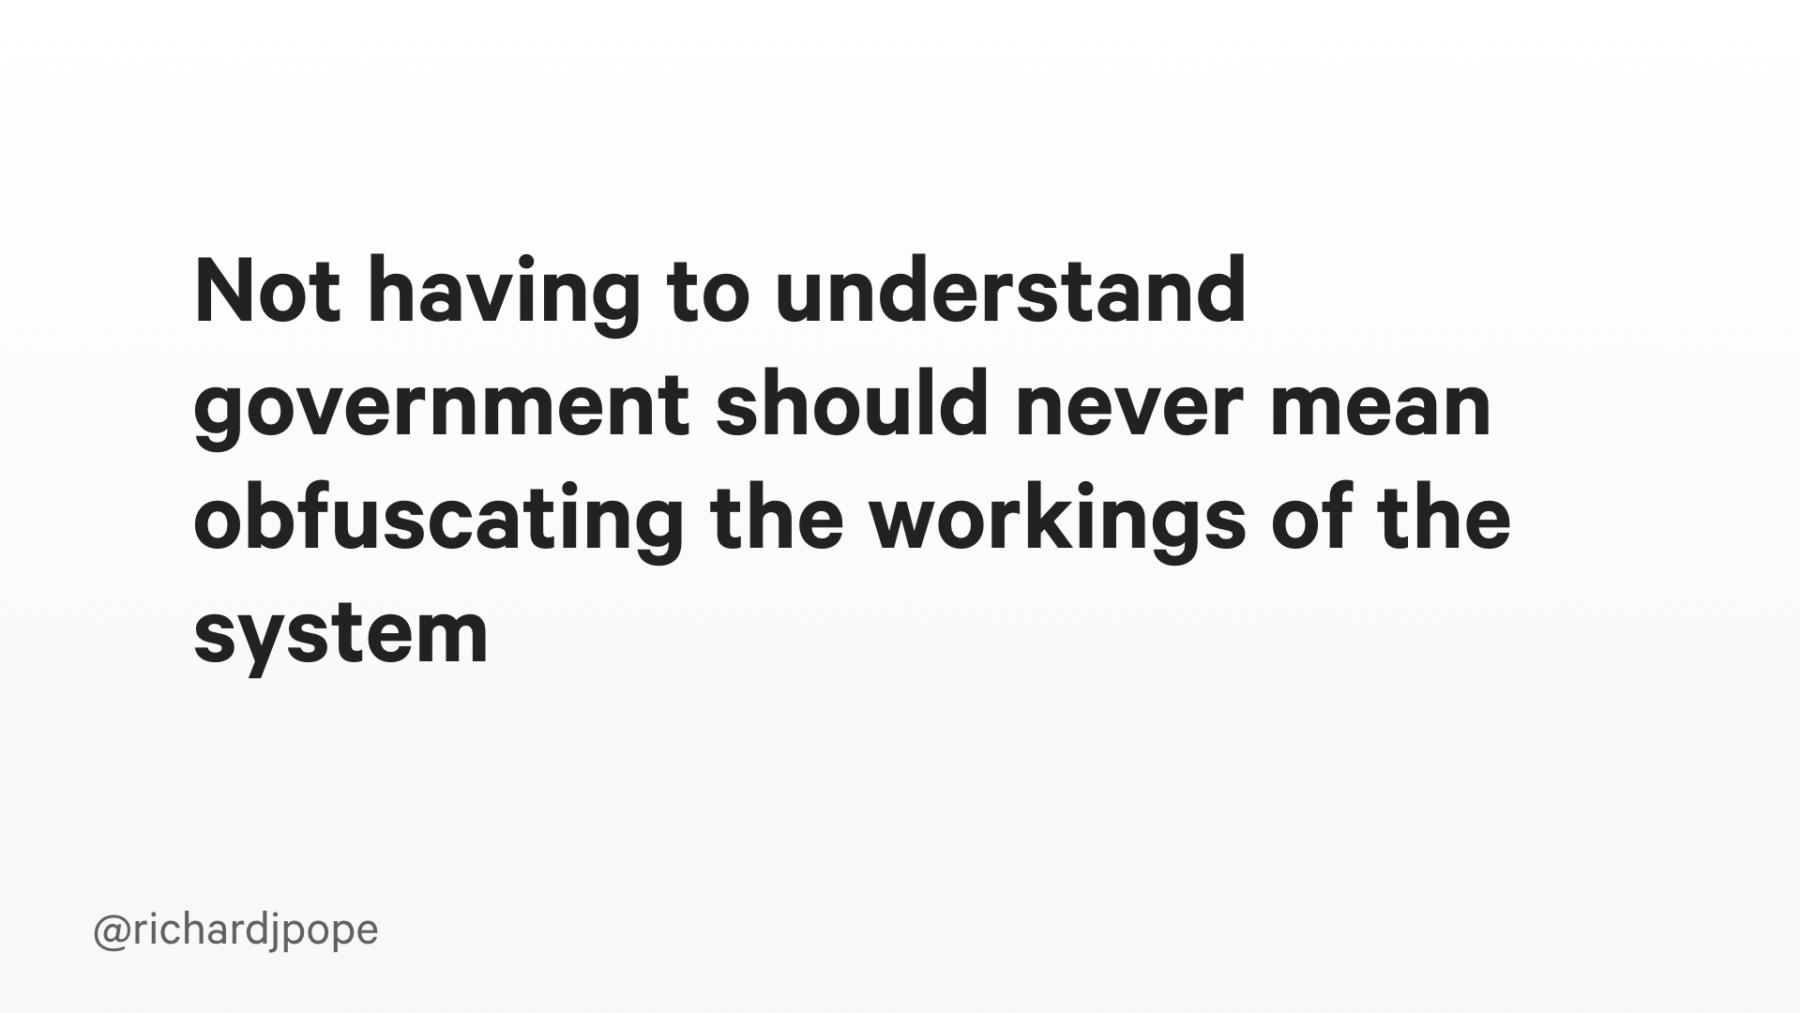 Slide copy: Not having to understand government should never mean obfuscating the workings of the system.